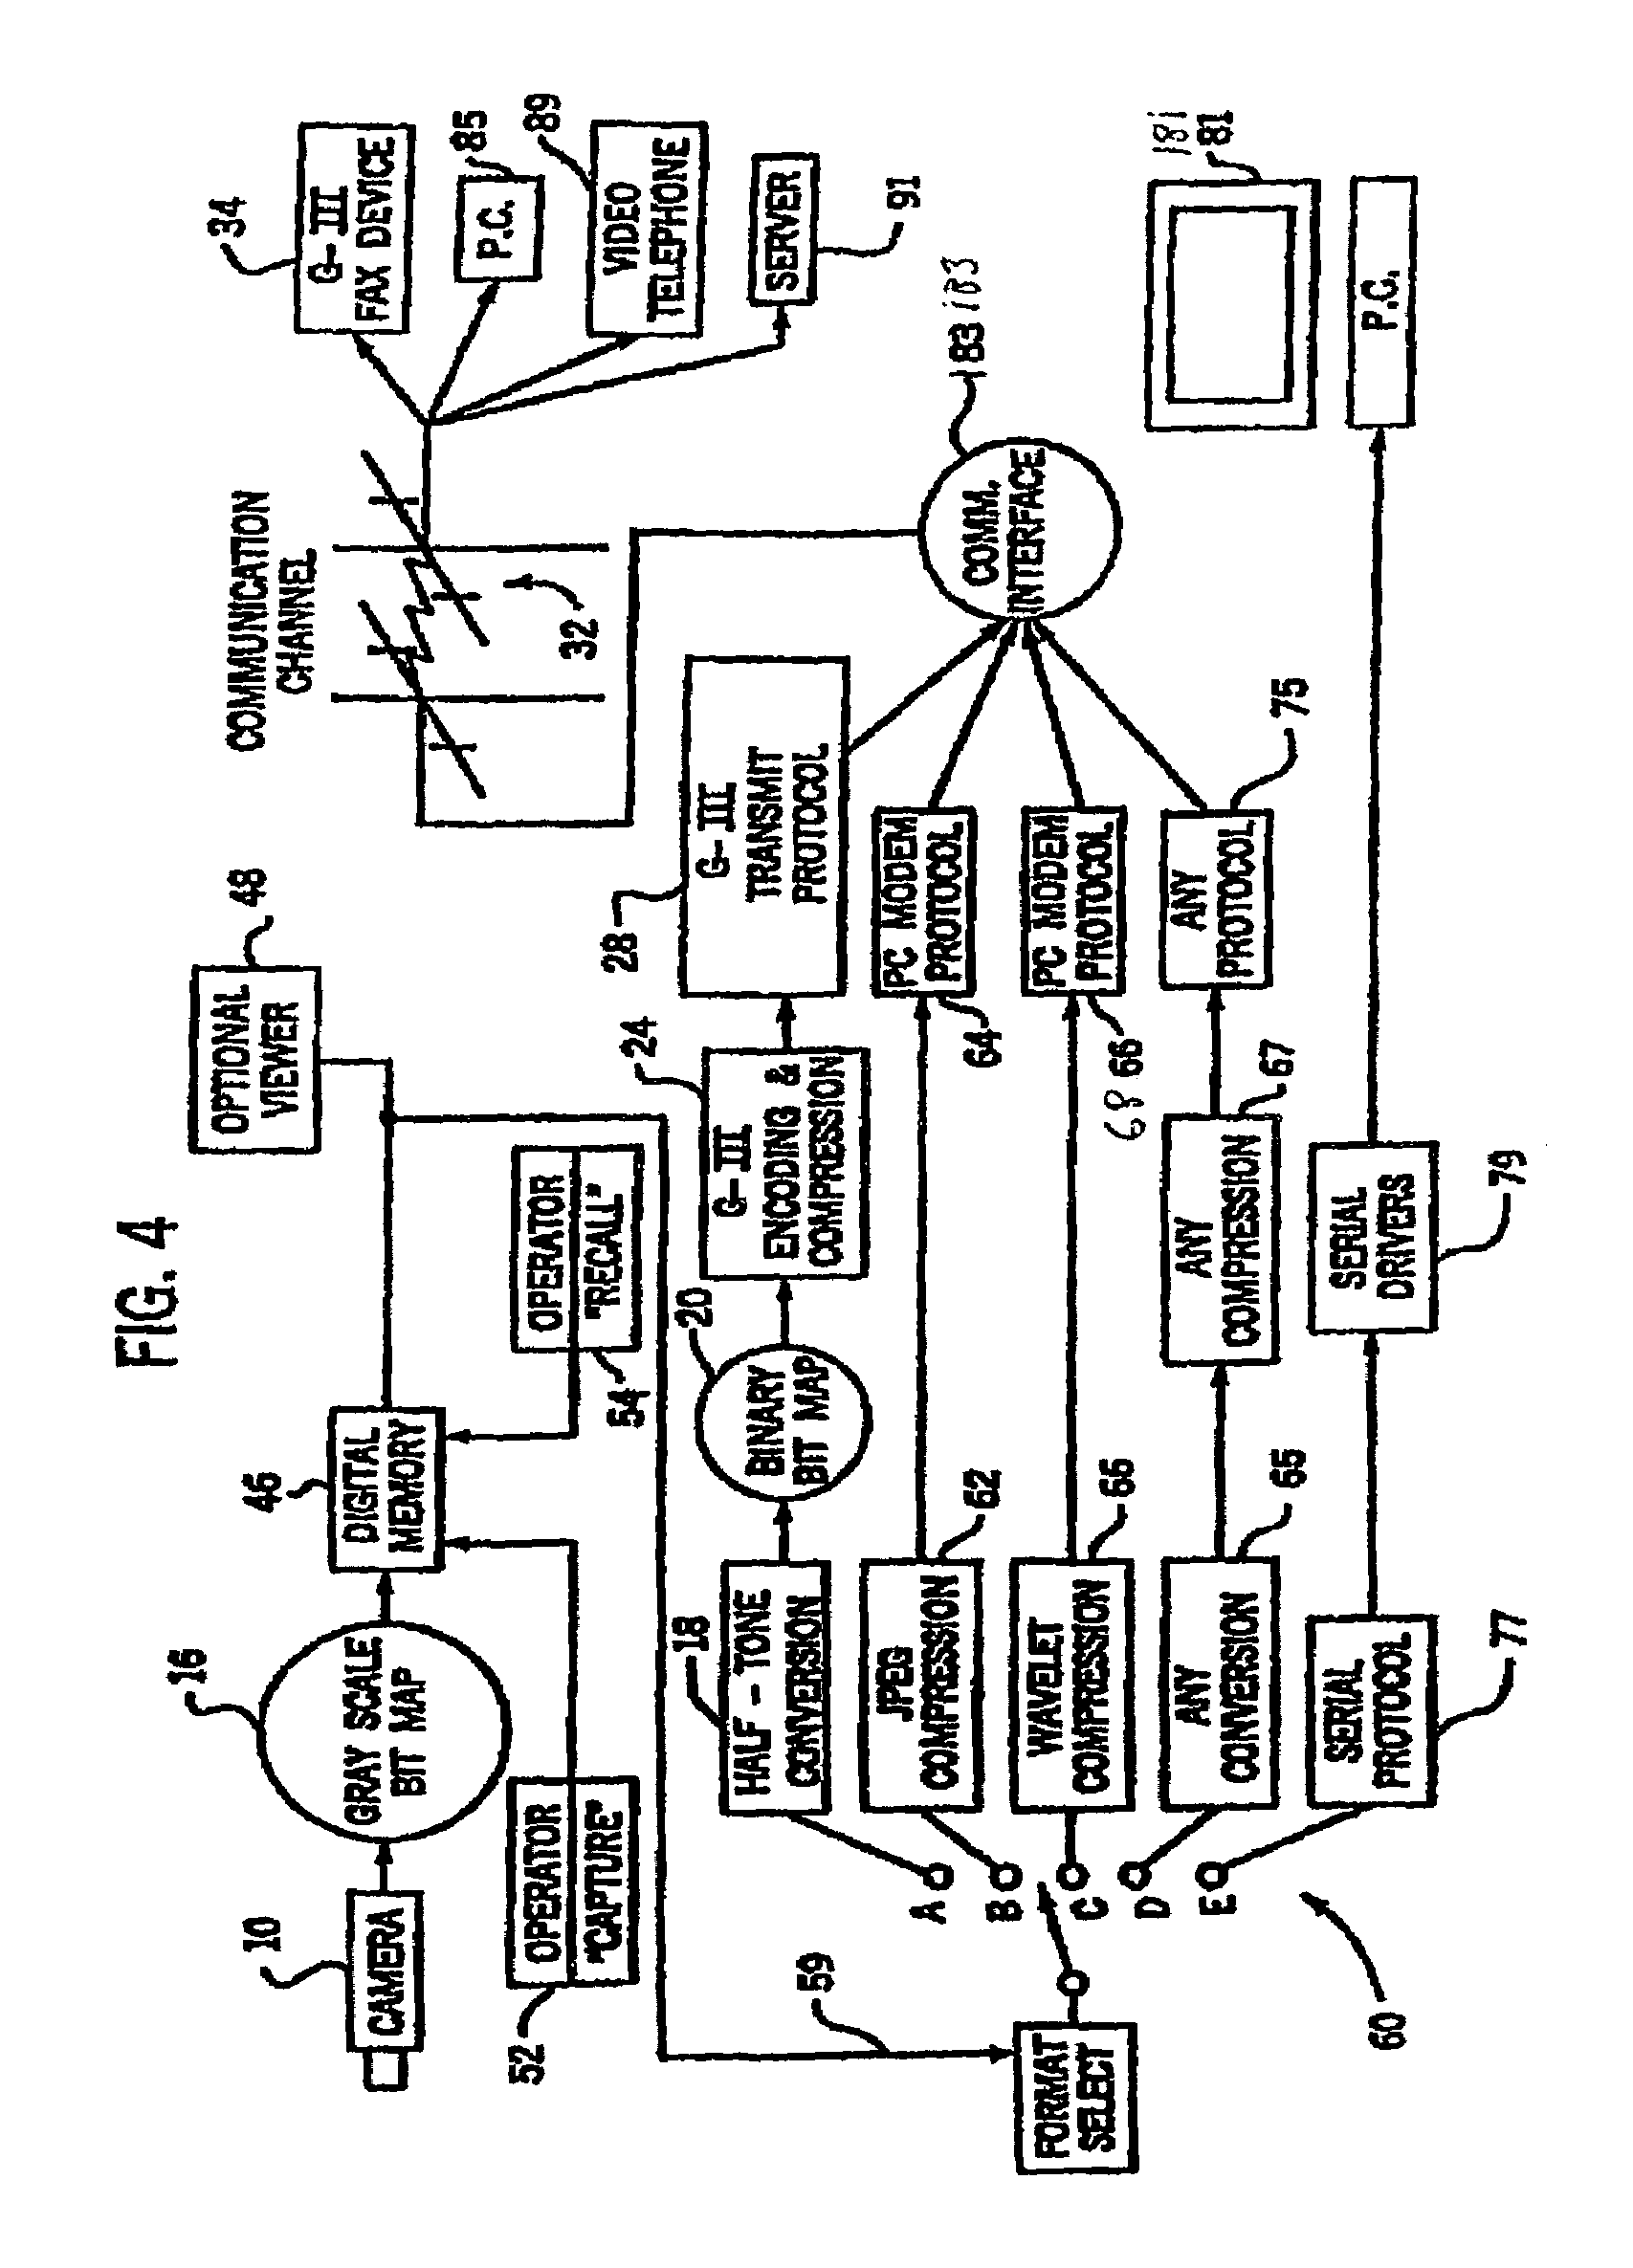 480 three phase service diagram  480  get free image about